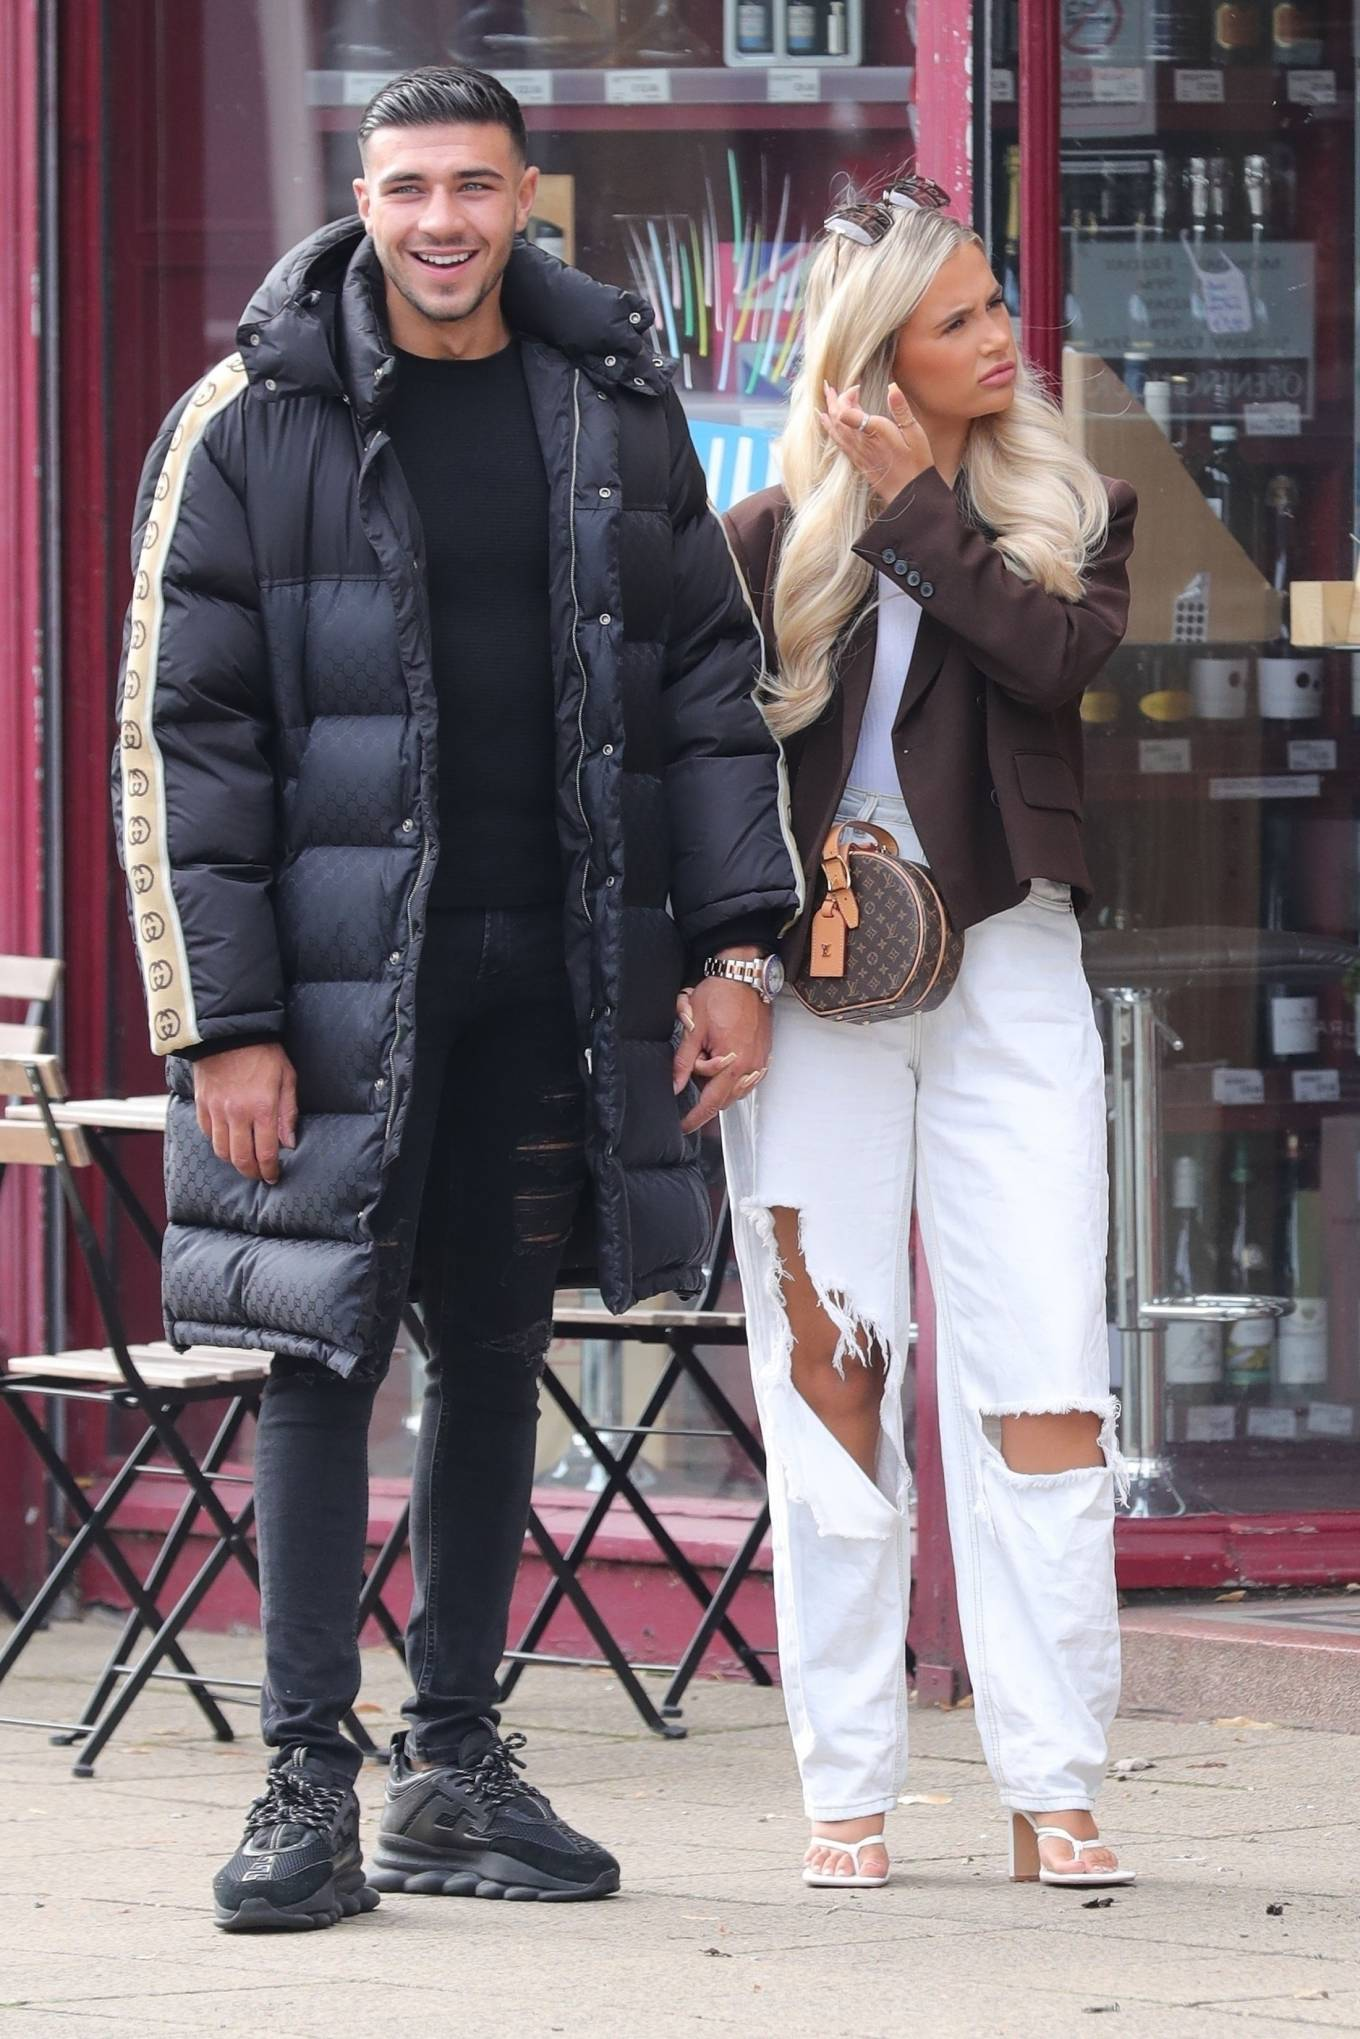 Molly-Mae Hague 2020 : Molly-Mae Hague and Tommy Fury – Seen while out in Cheshire -18